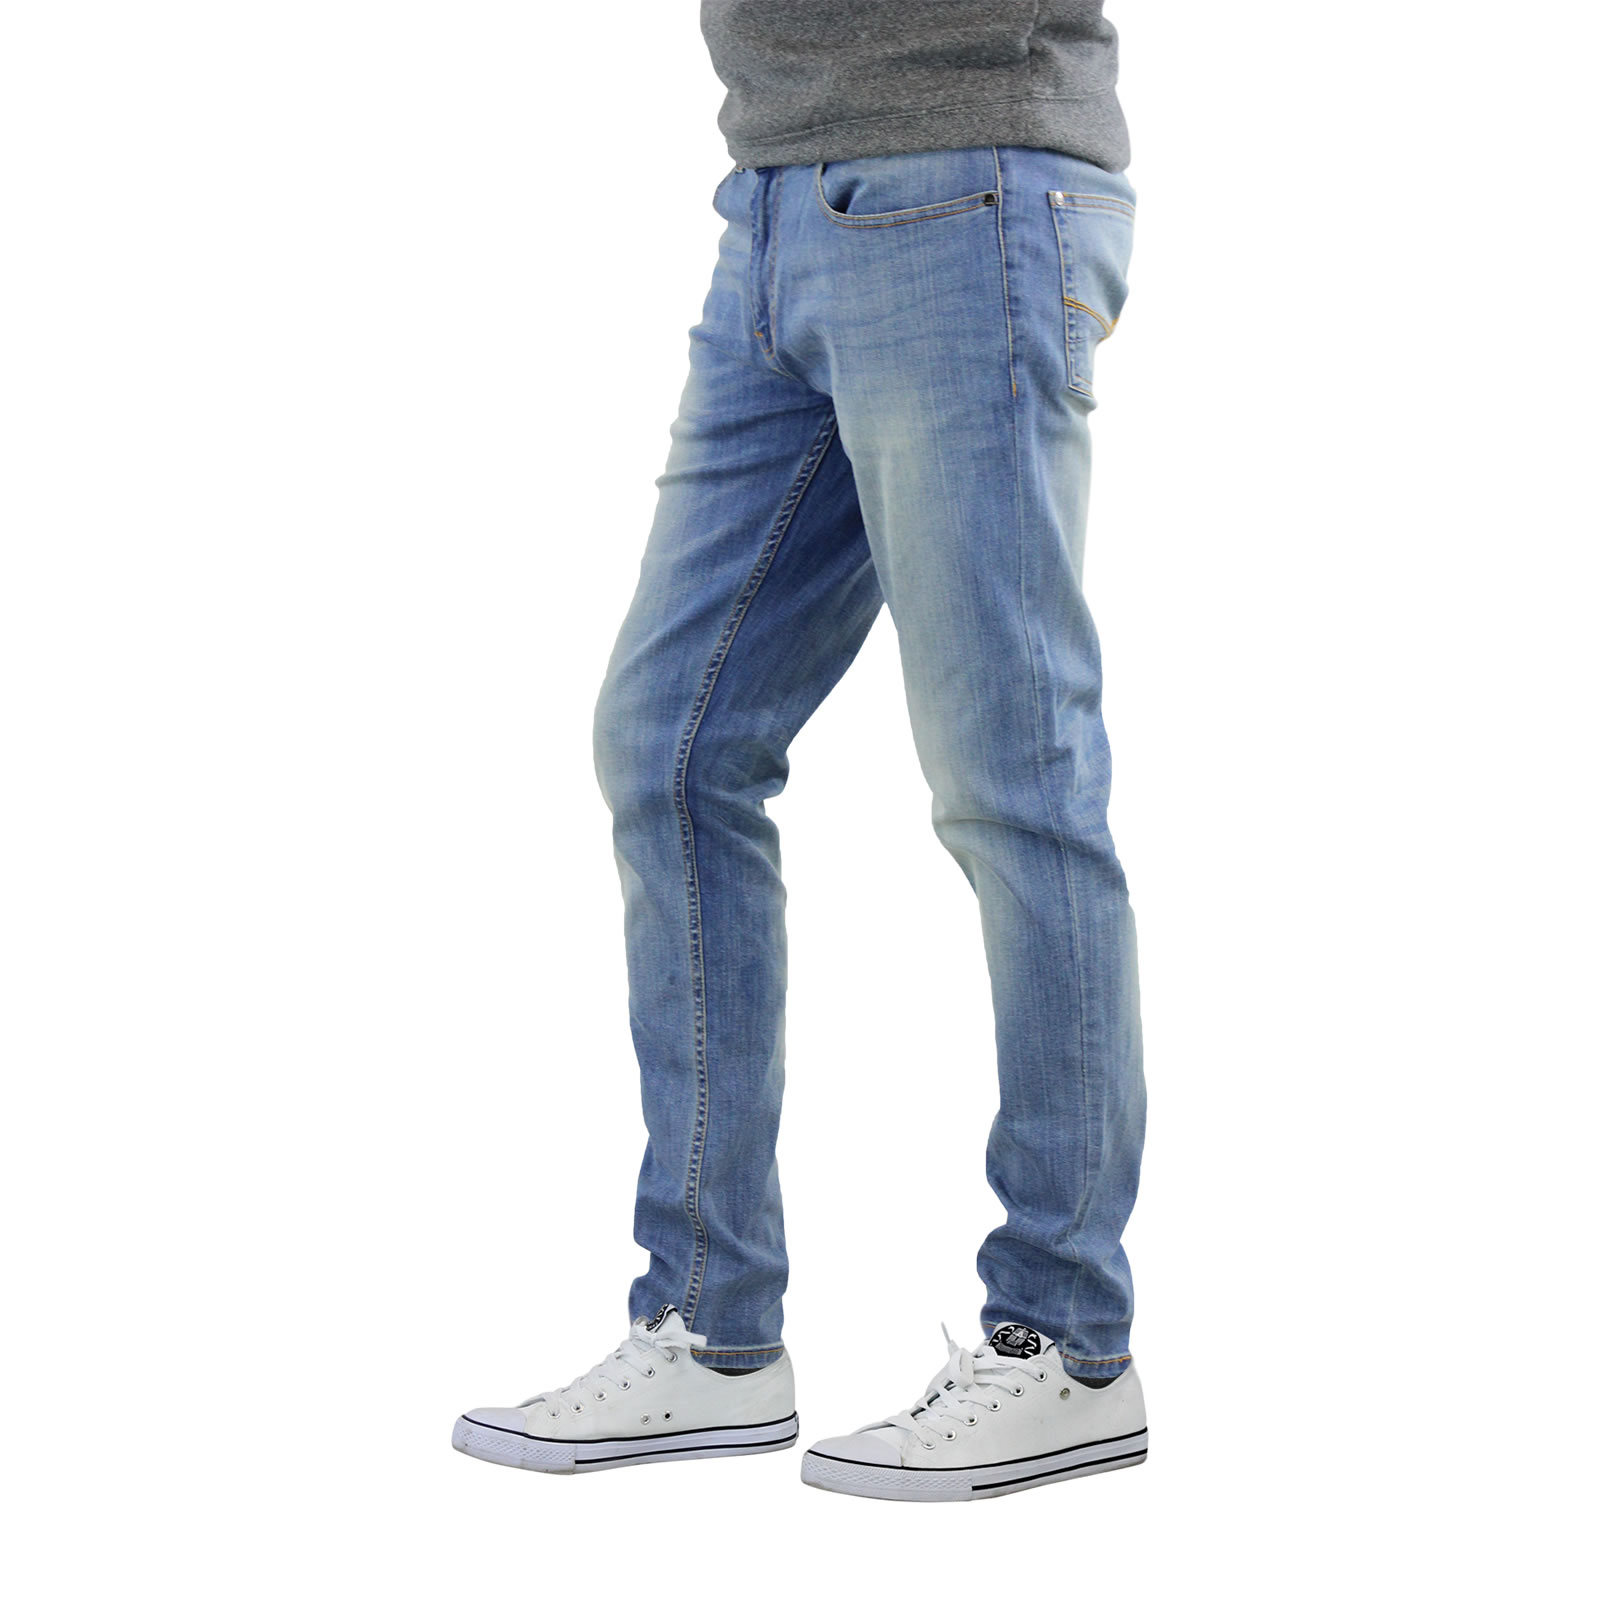 Mens Stretch Jeans. Looking to switch up your jeans style? Trade in the relaxed, loose fit for a more tailored look. Check out these classic denim with a new twist in men's stretch jeans. Get to know these comfy jeans from your favorite brands. Casual Cool Take your weekend look to the next level by upping the comfy factor.